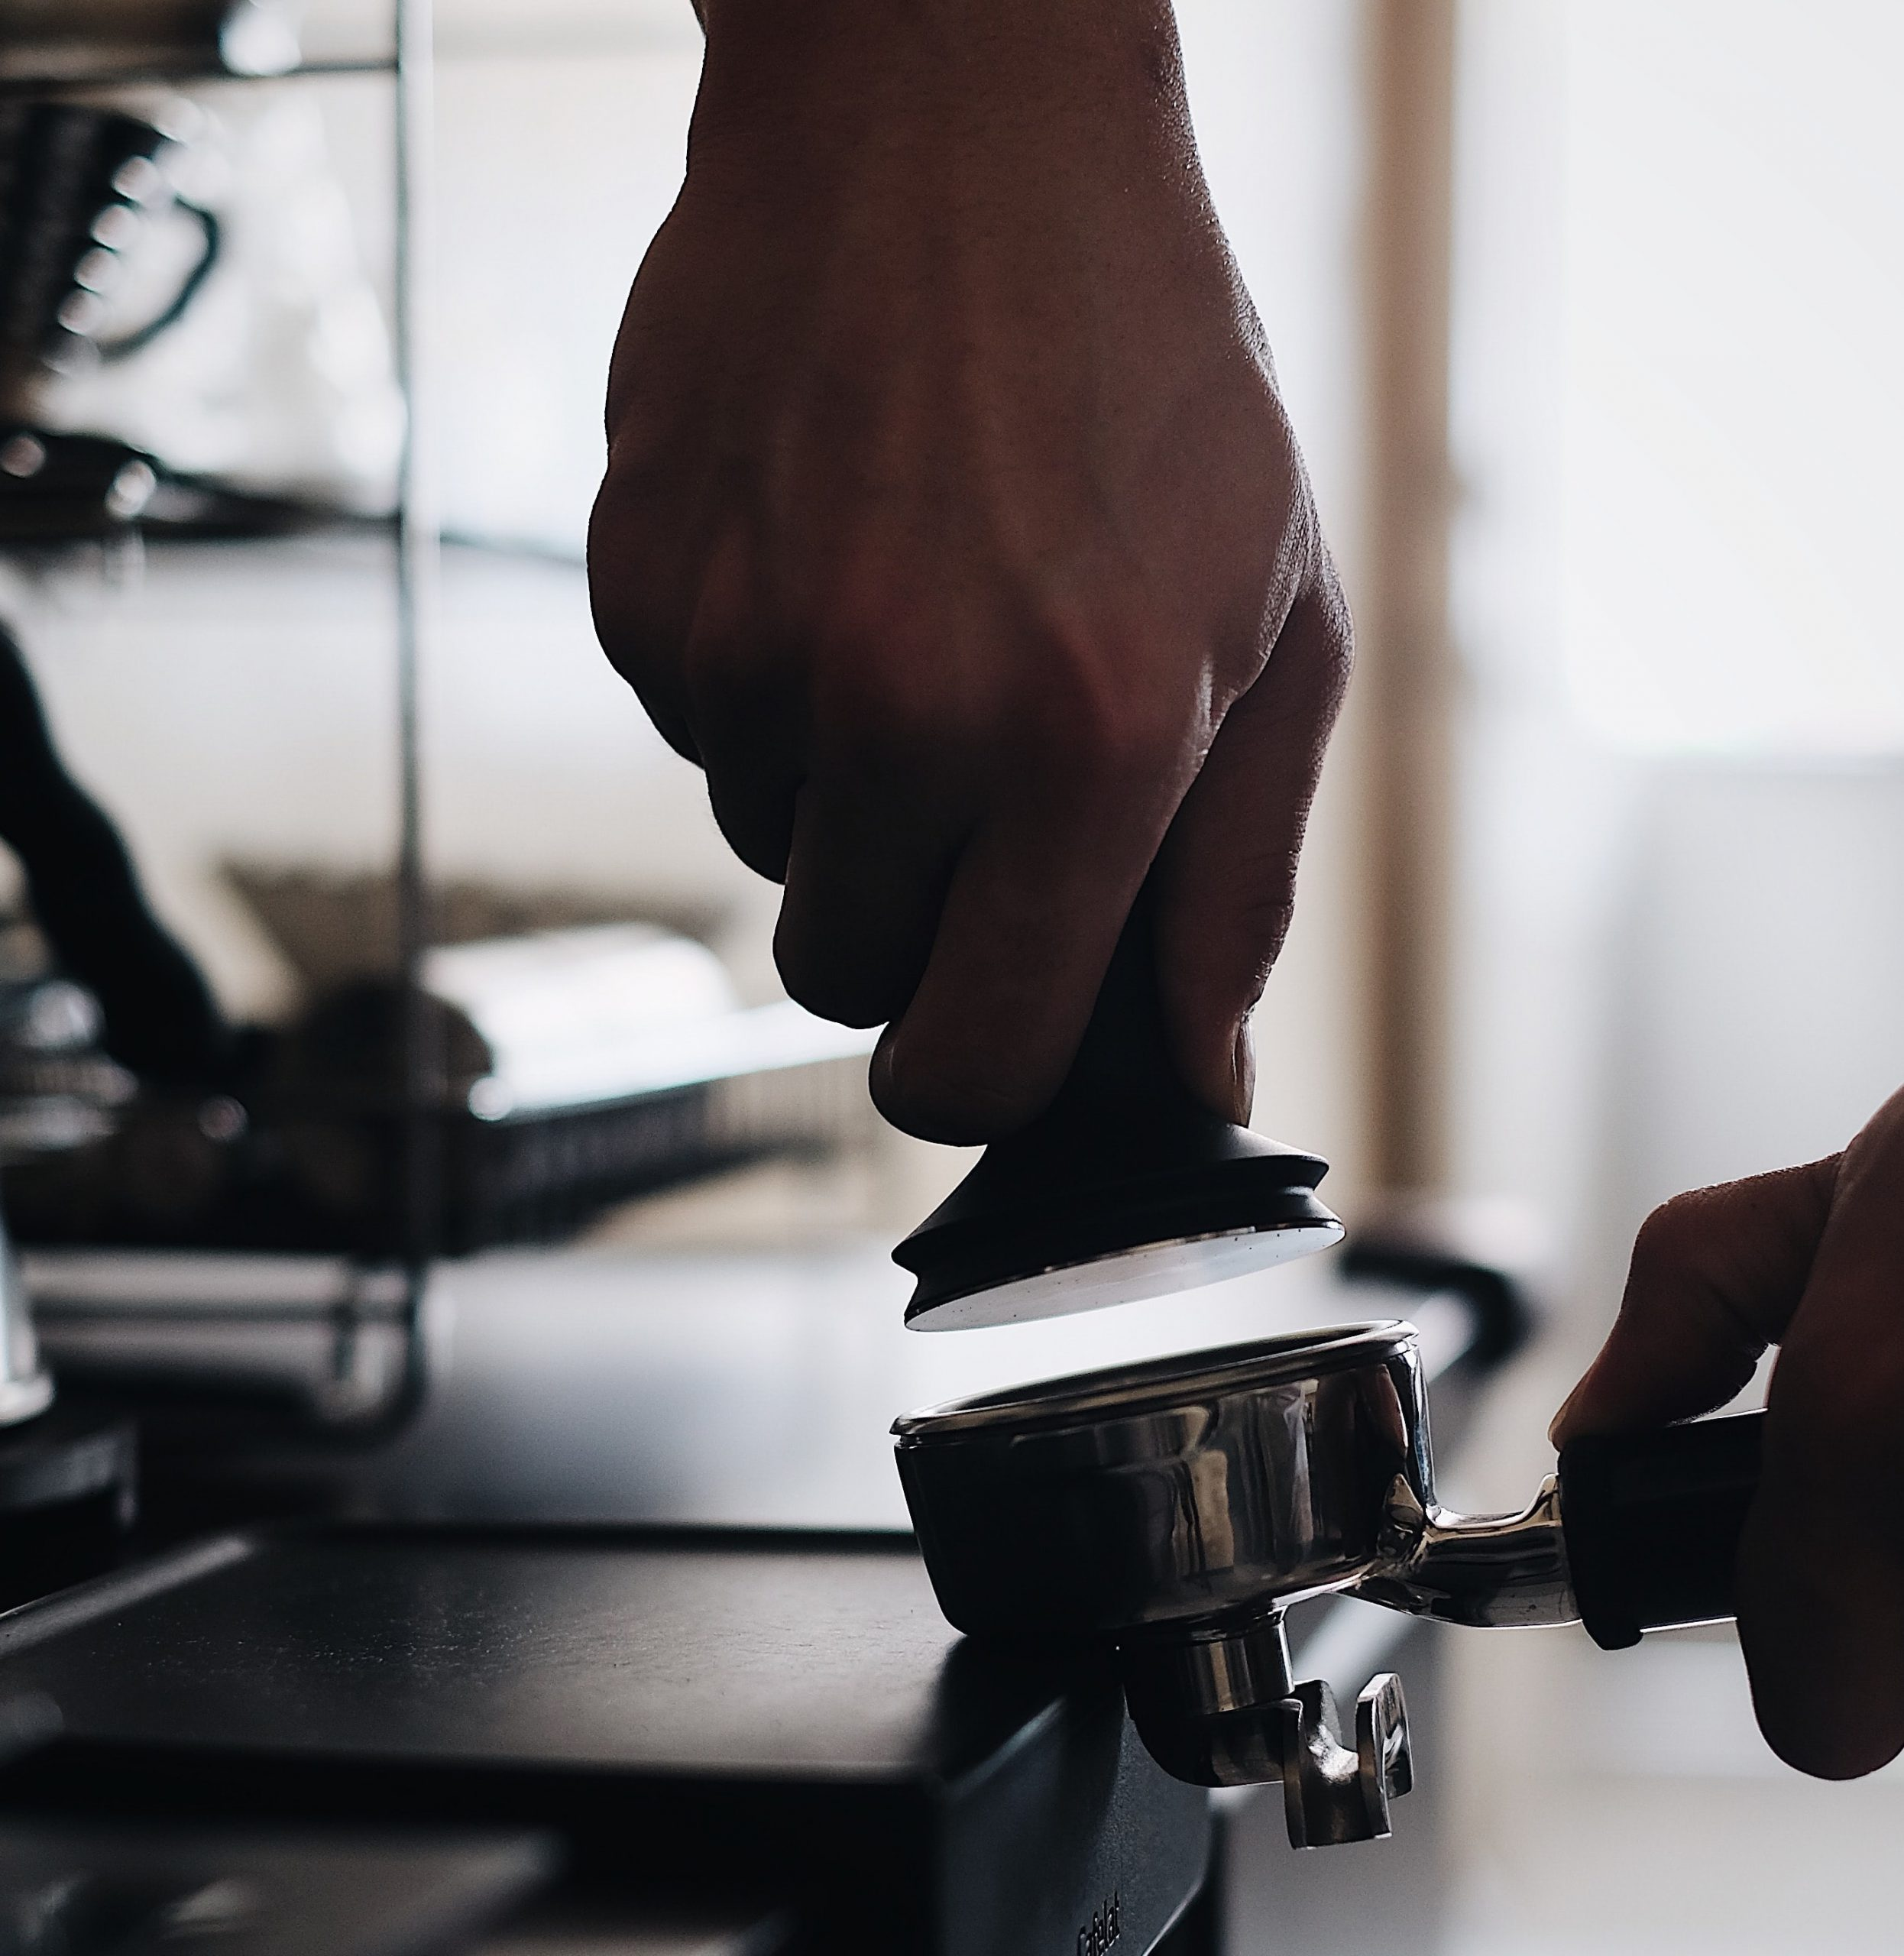 Barista tamping a coffee disc